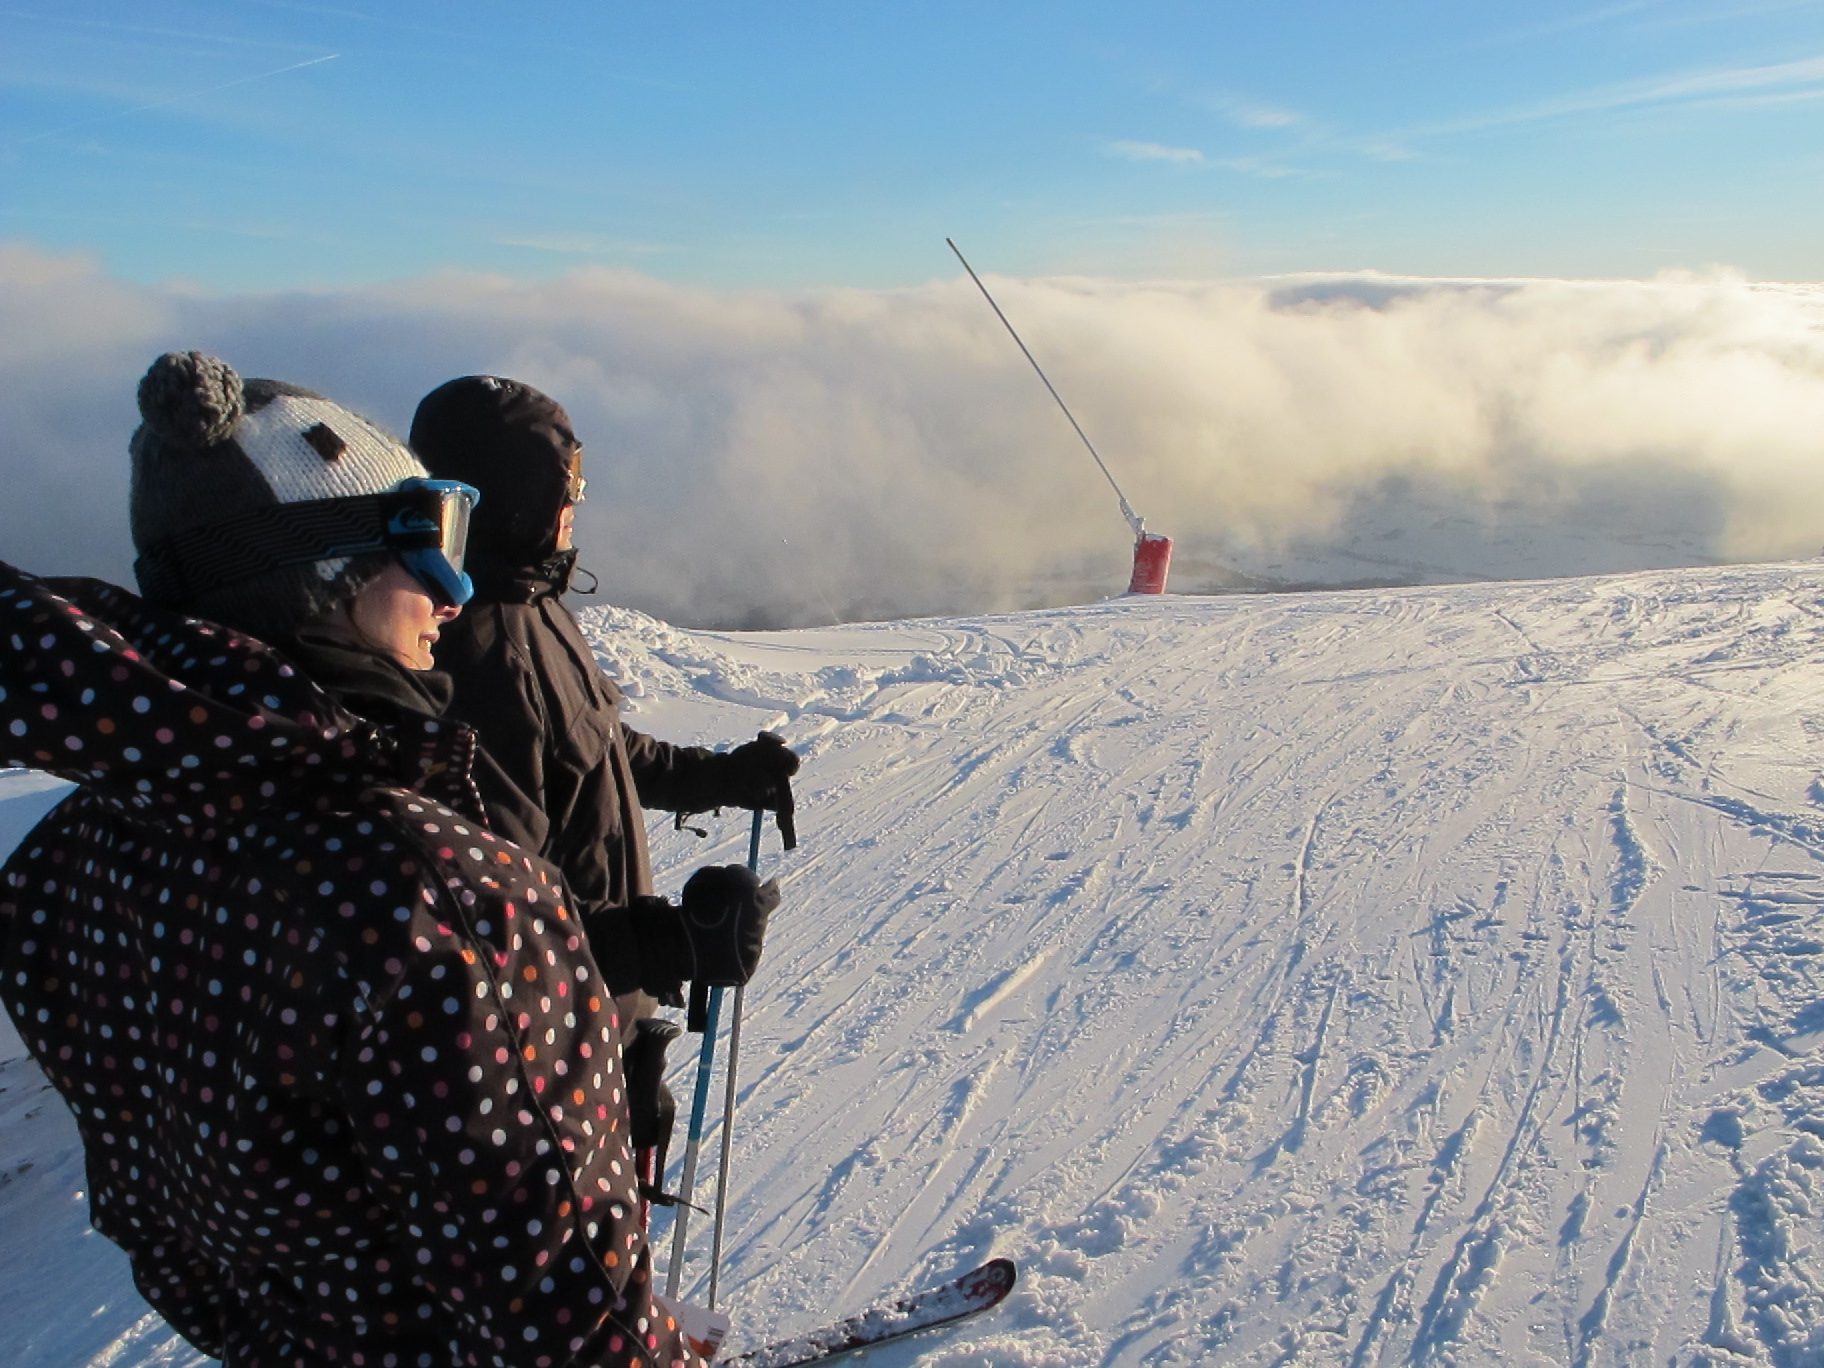 Skiing in the clouds